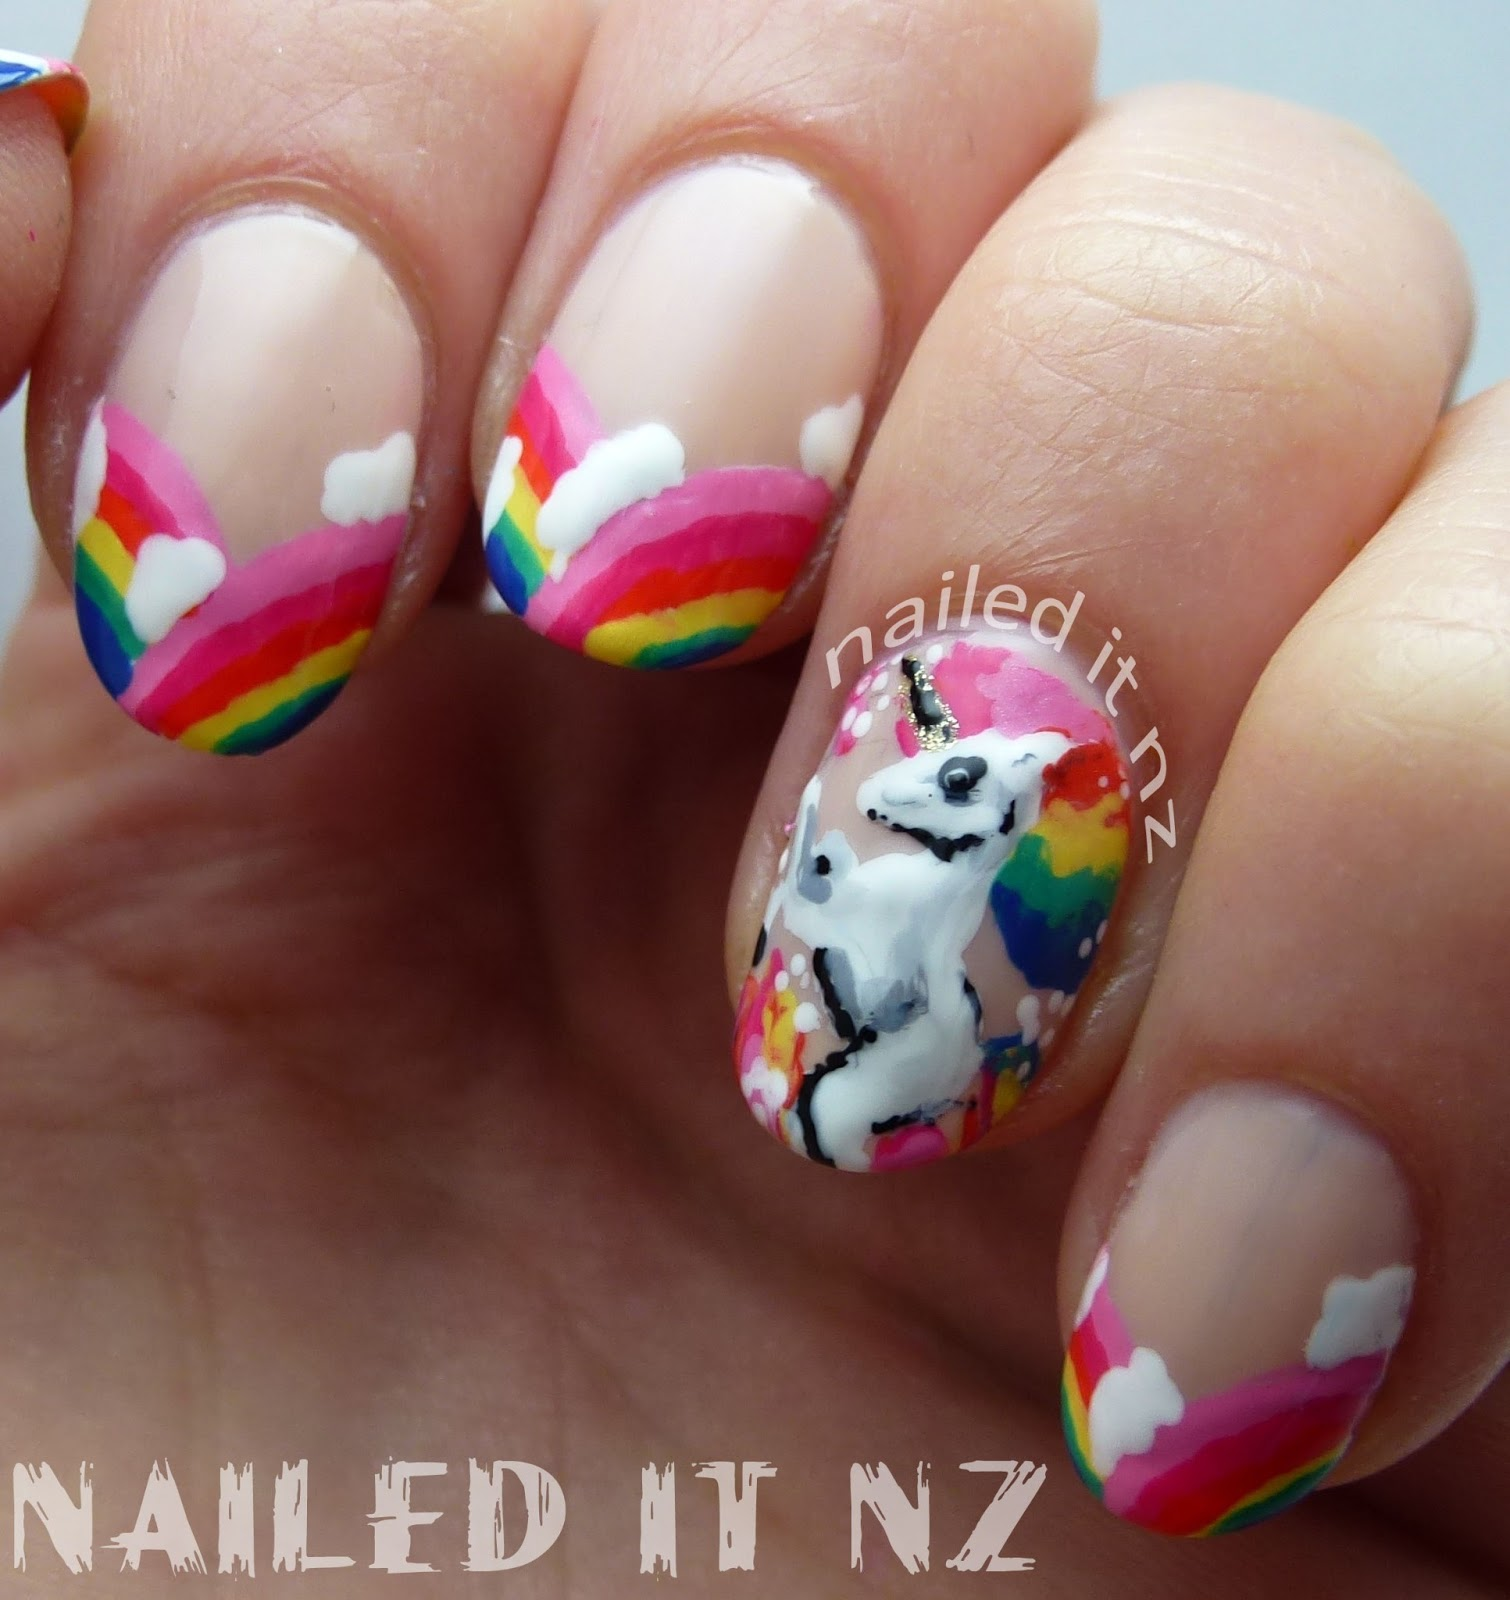 Rainbow unicorn nail art inspired by robin moses nailed it nz prinsesfo Image collections